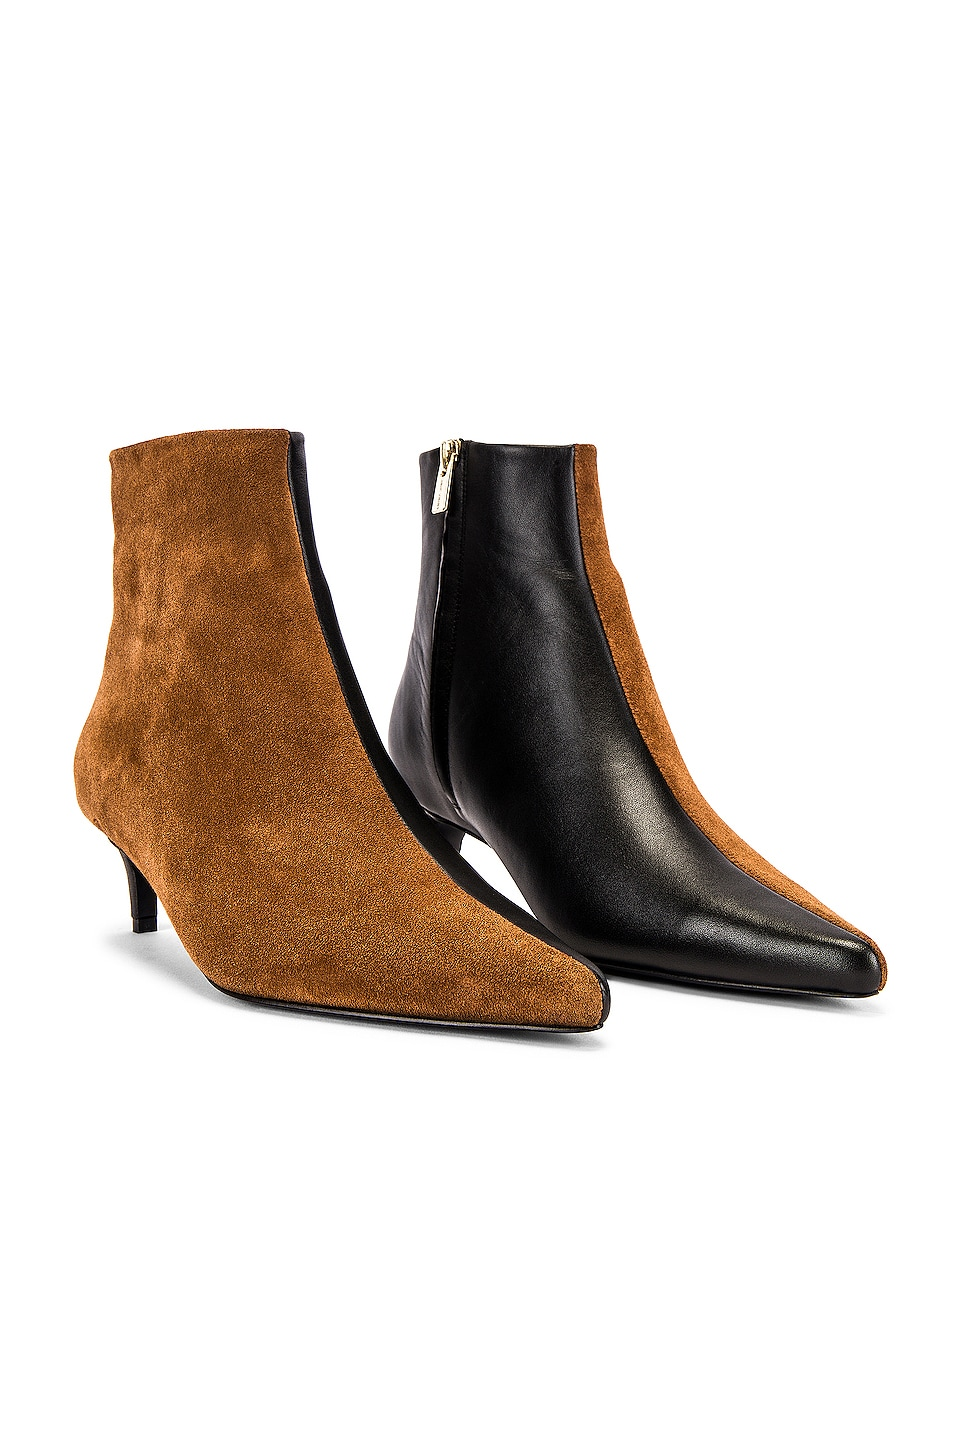 ANINE BING Loren Booties in Cognac & Black